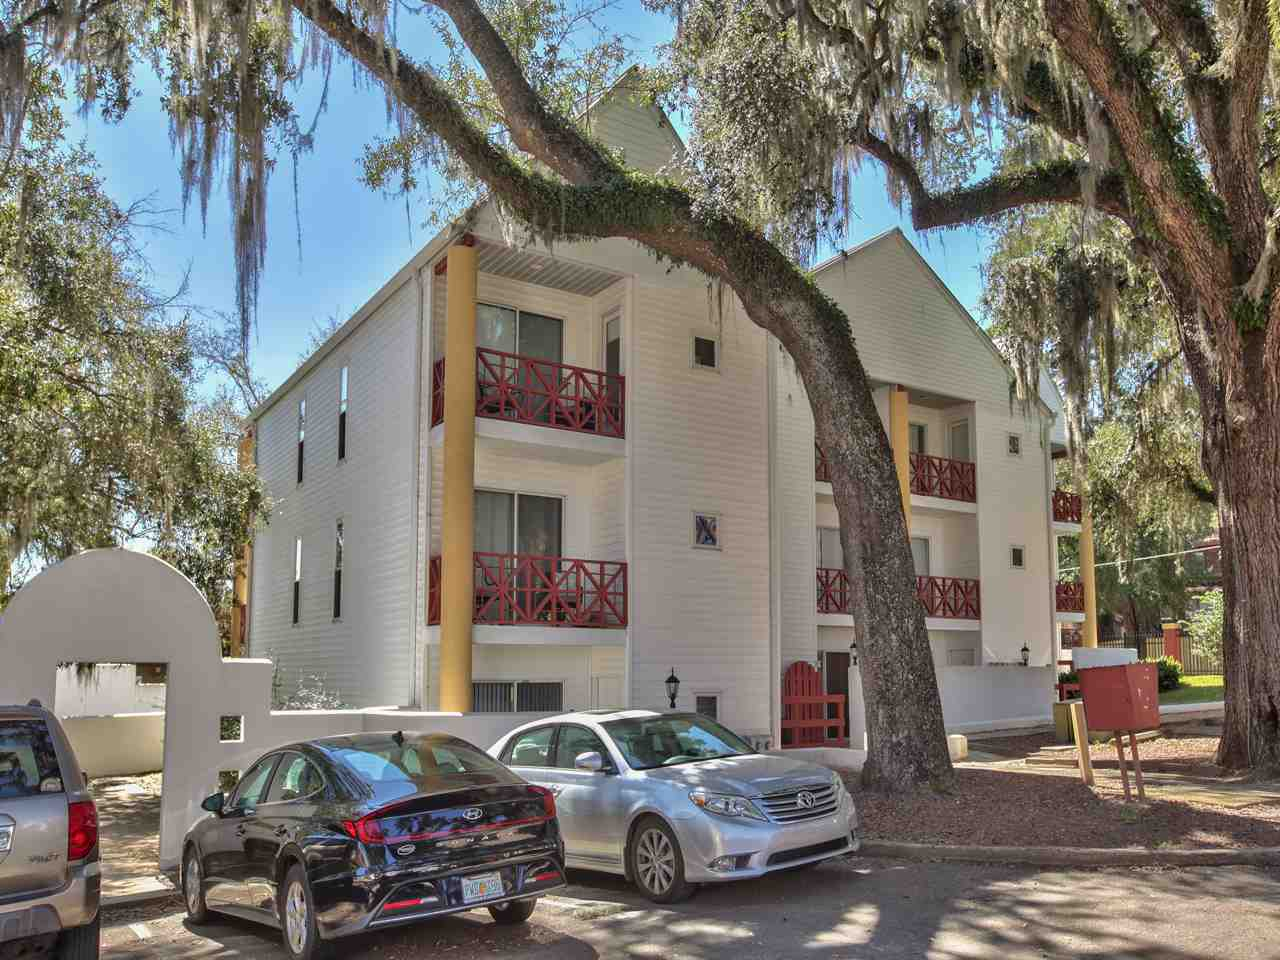 24HR NOTICE REQUIRED/call LA for appointment- leased thru 7/31/21. Stylish ground floor student condo in highly sought-after complex in the shadow of Doak Stadium! Condos in this complex rarely come available and never last long! Use 2 parking permits or walk to the game, class, bus stops, restaurants, & College Town. Low maintenance, 2 bedrooms, 2 full baths, updated kitchen and baths, freshly painted, covered patios and full-size washer/dryer. HOA fees include exterior bldg and common area maintenance and insurance, trash, water, and sewer. Gorgeous 100-year oak trees adorn this FSU gem. Buyer to verify all measurements. Don't miss out on this INVESTMENT!